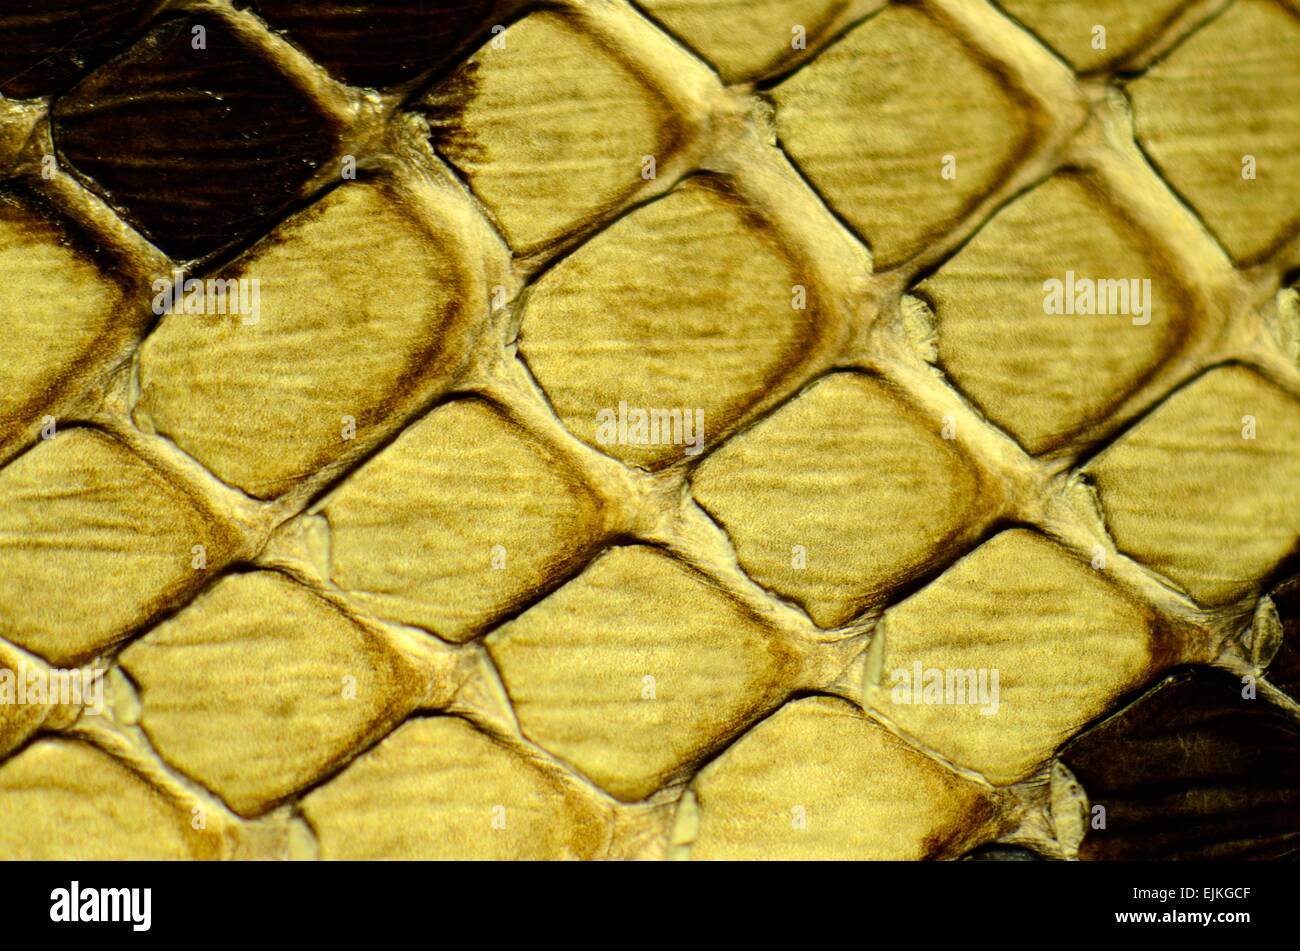 snake skin with the pattern lozenge style - Stock Image